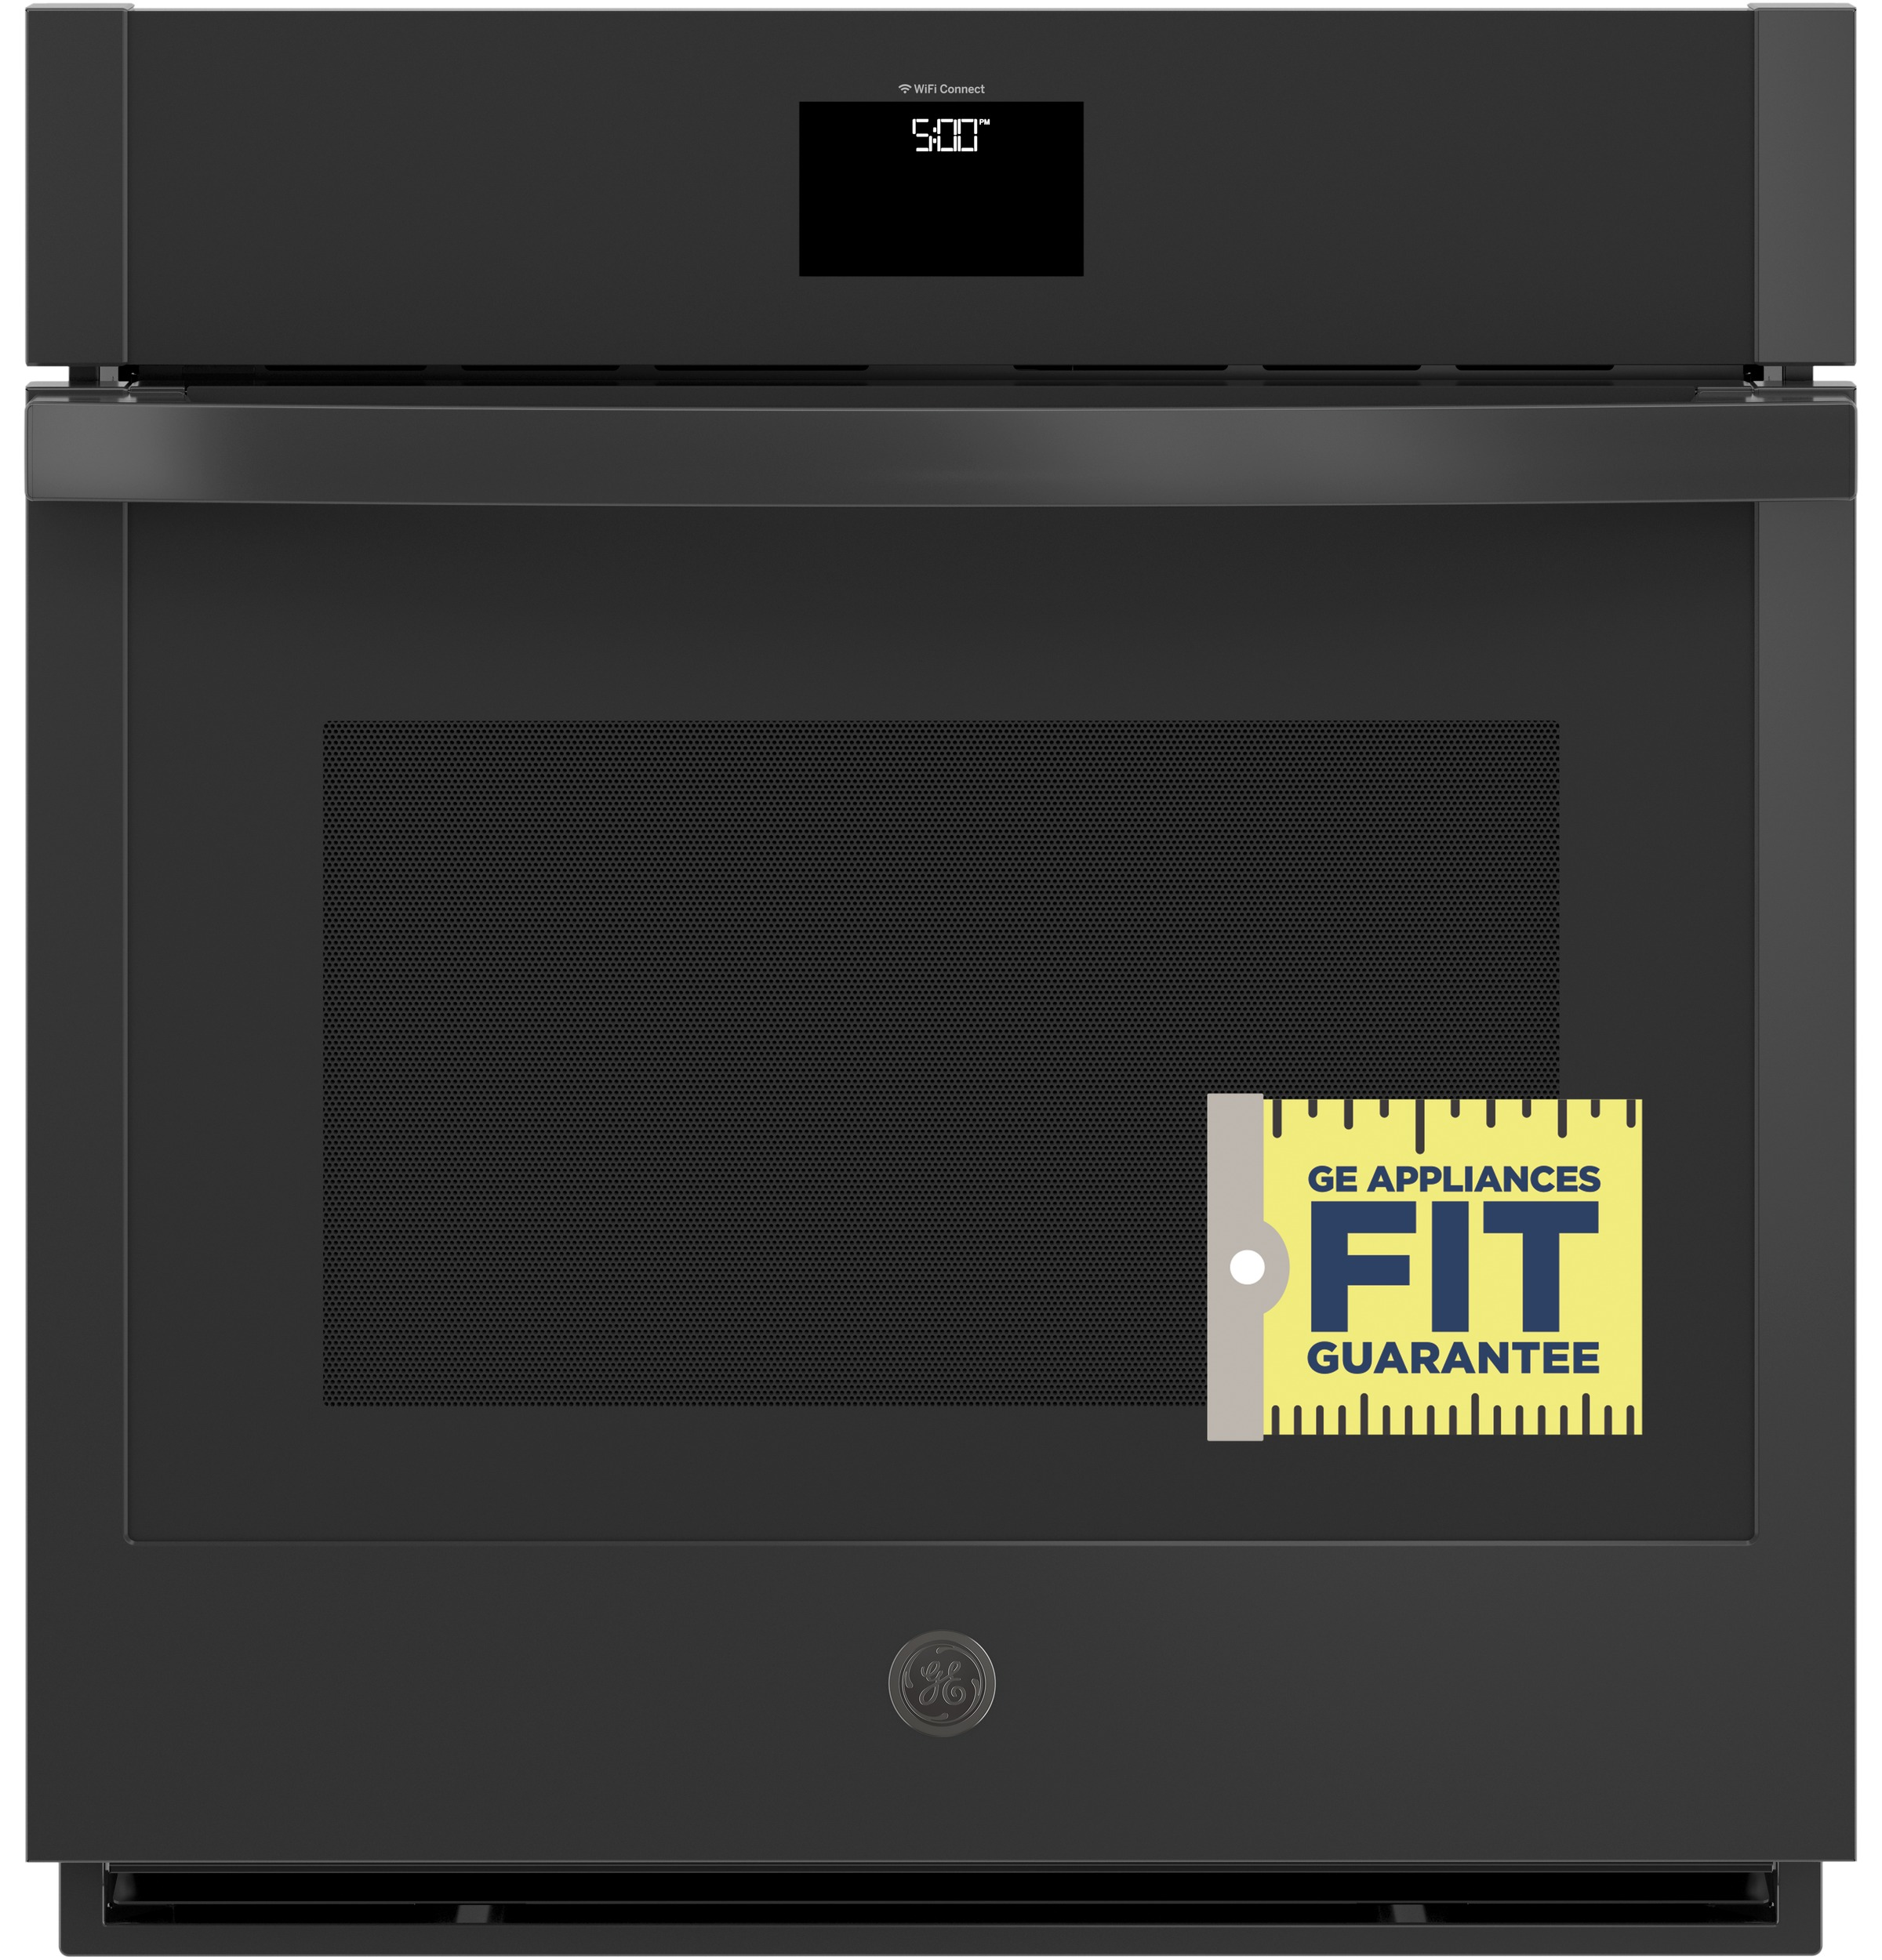 "Model: JKS5000DNBB | GE GE® 27"" Smart Built-In Convection Single Wall Oven"